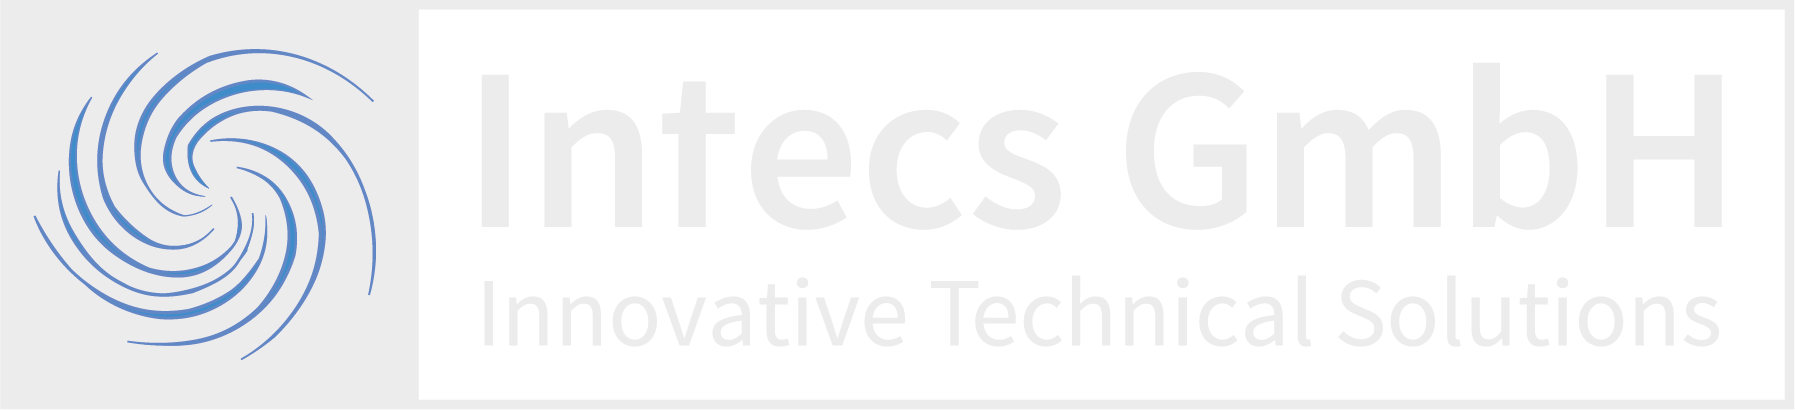 Intecs GmbH Logo